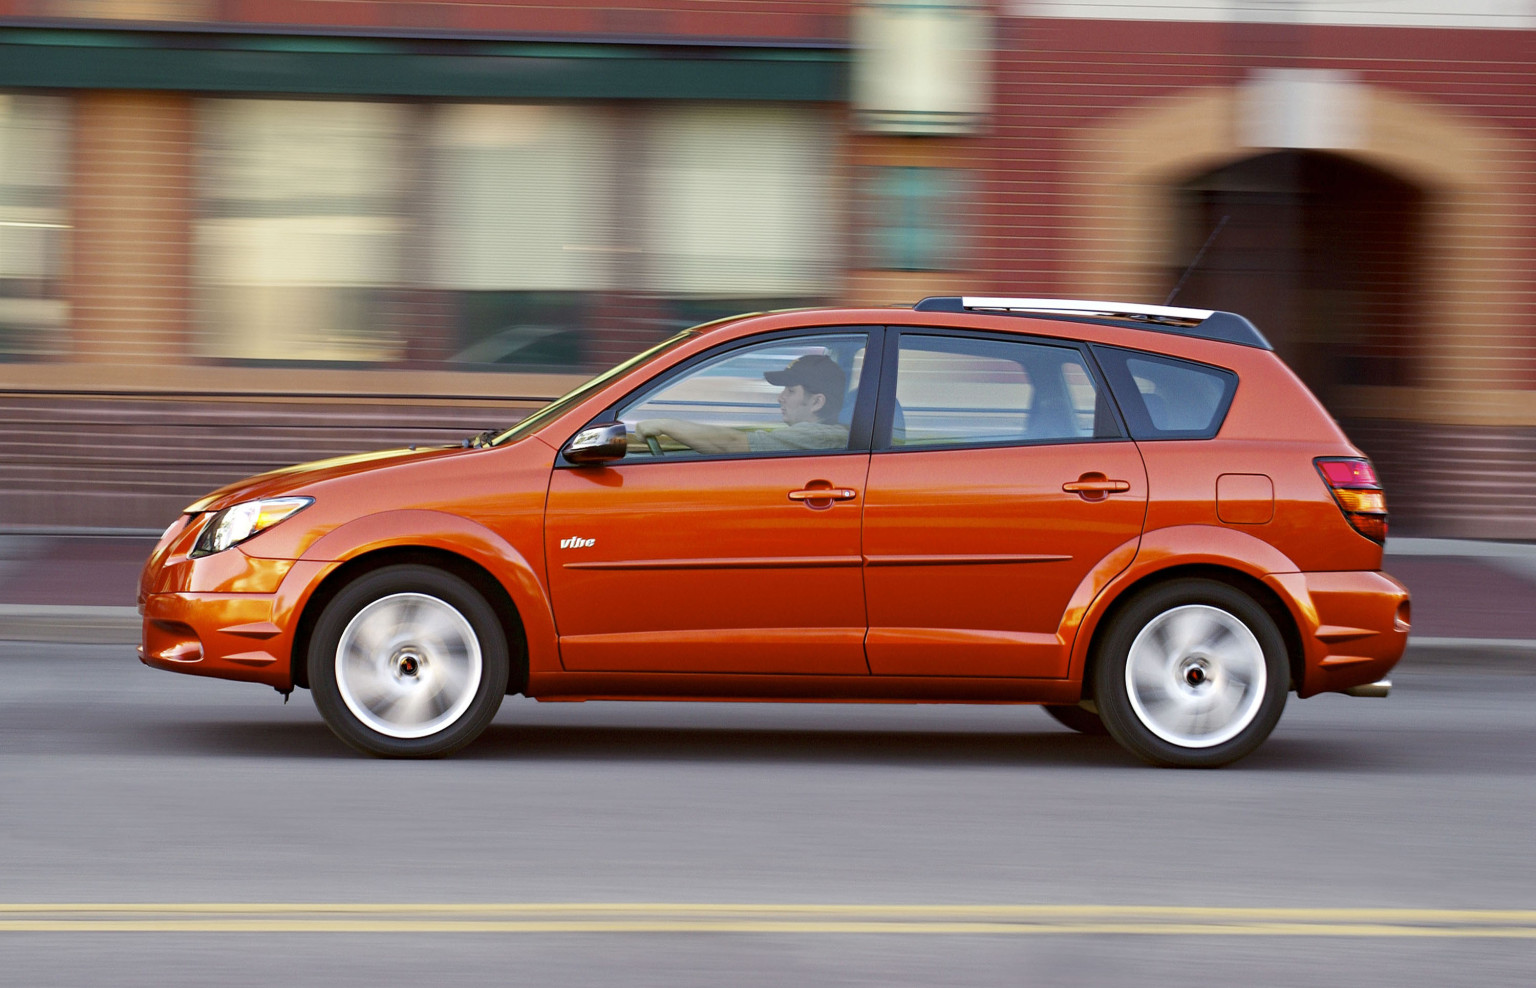 5 Cheap, Reliable And Fuel-Efficient Used Cars | HuffPost